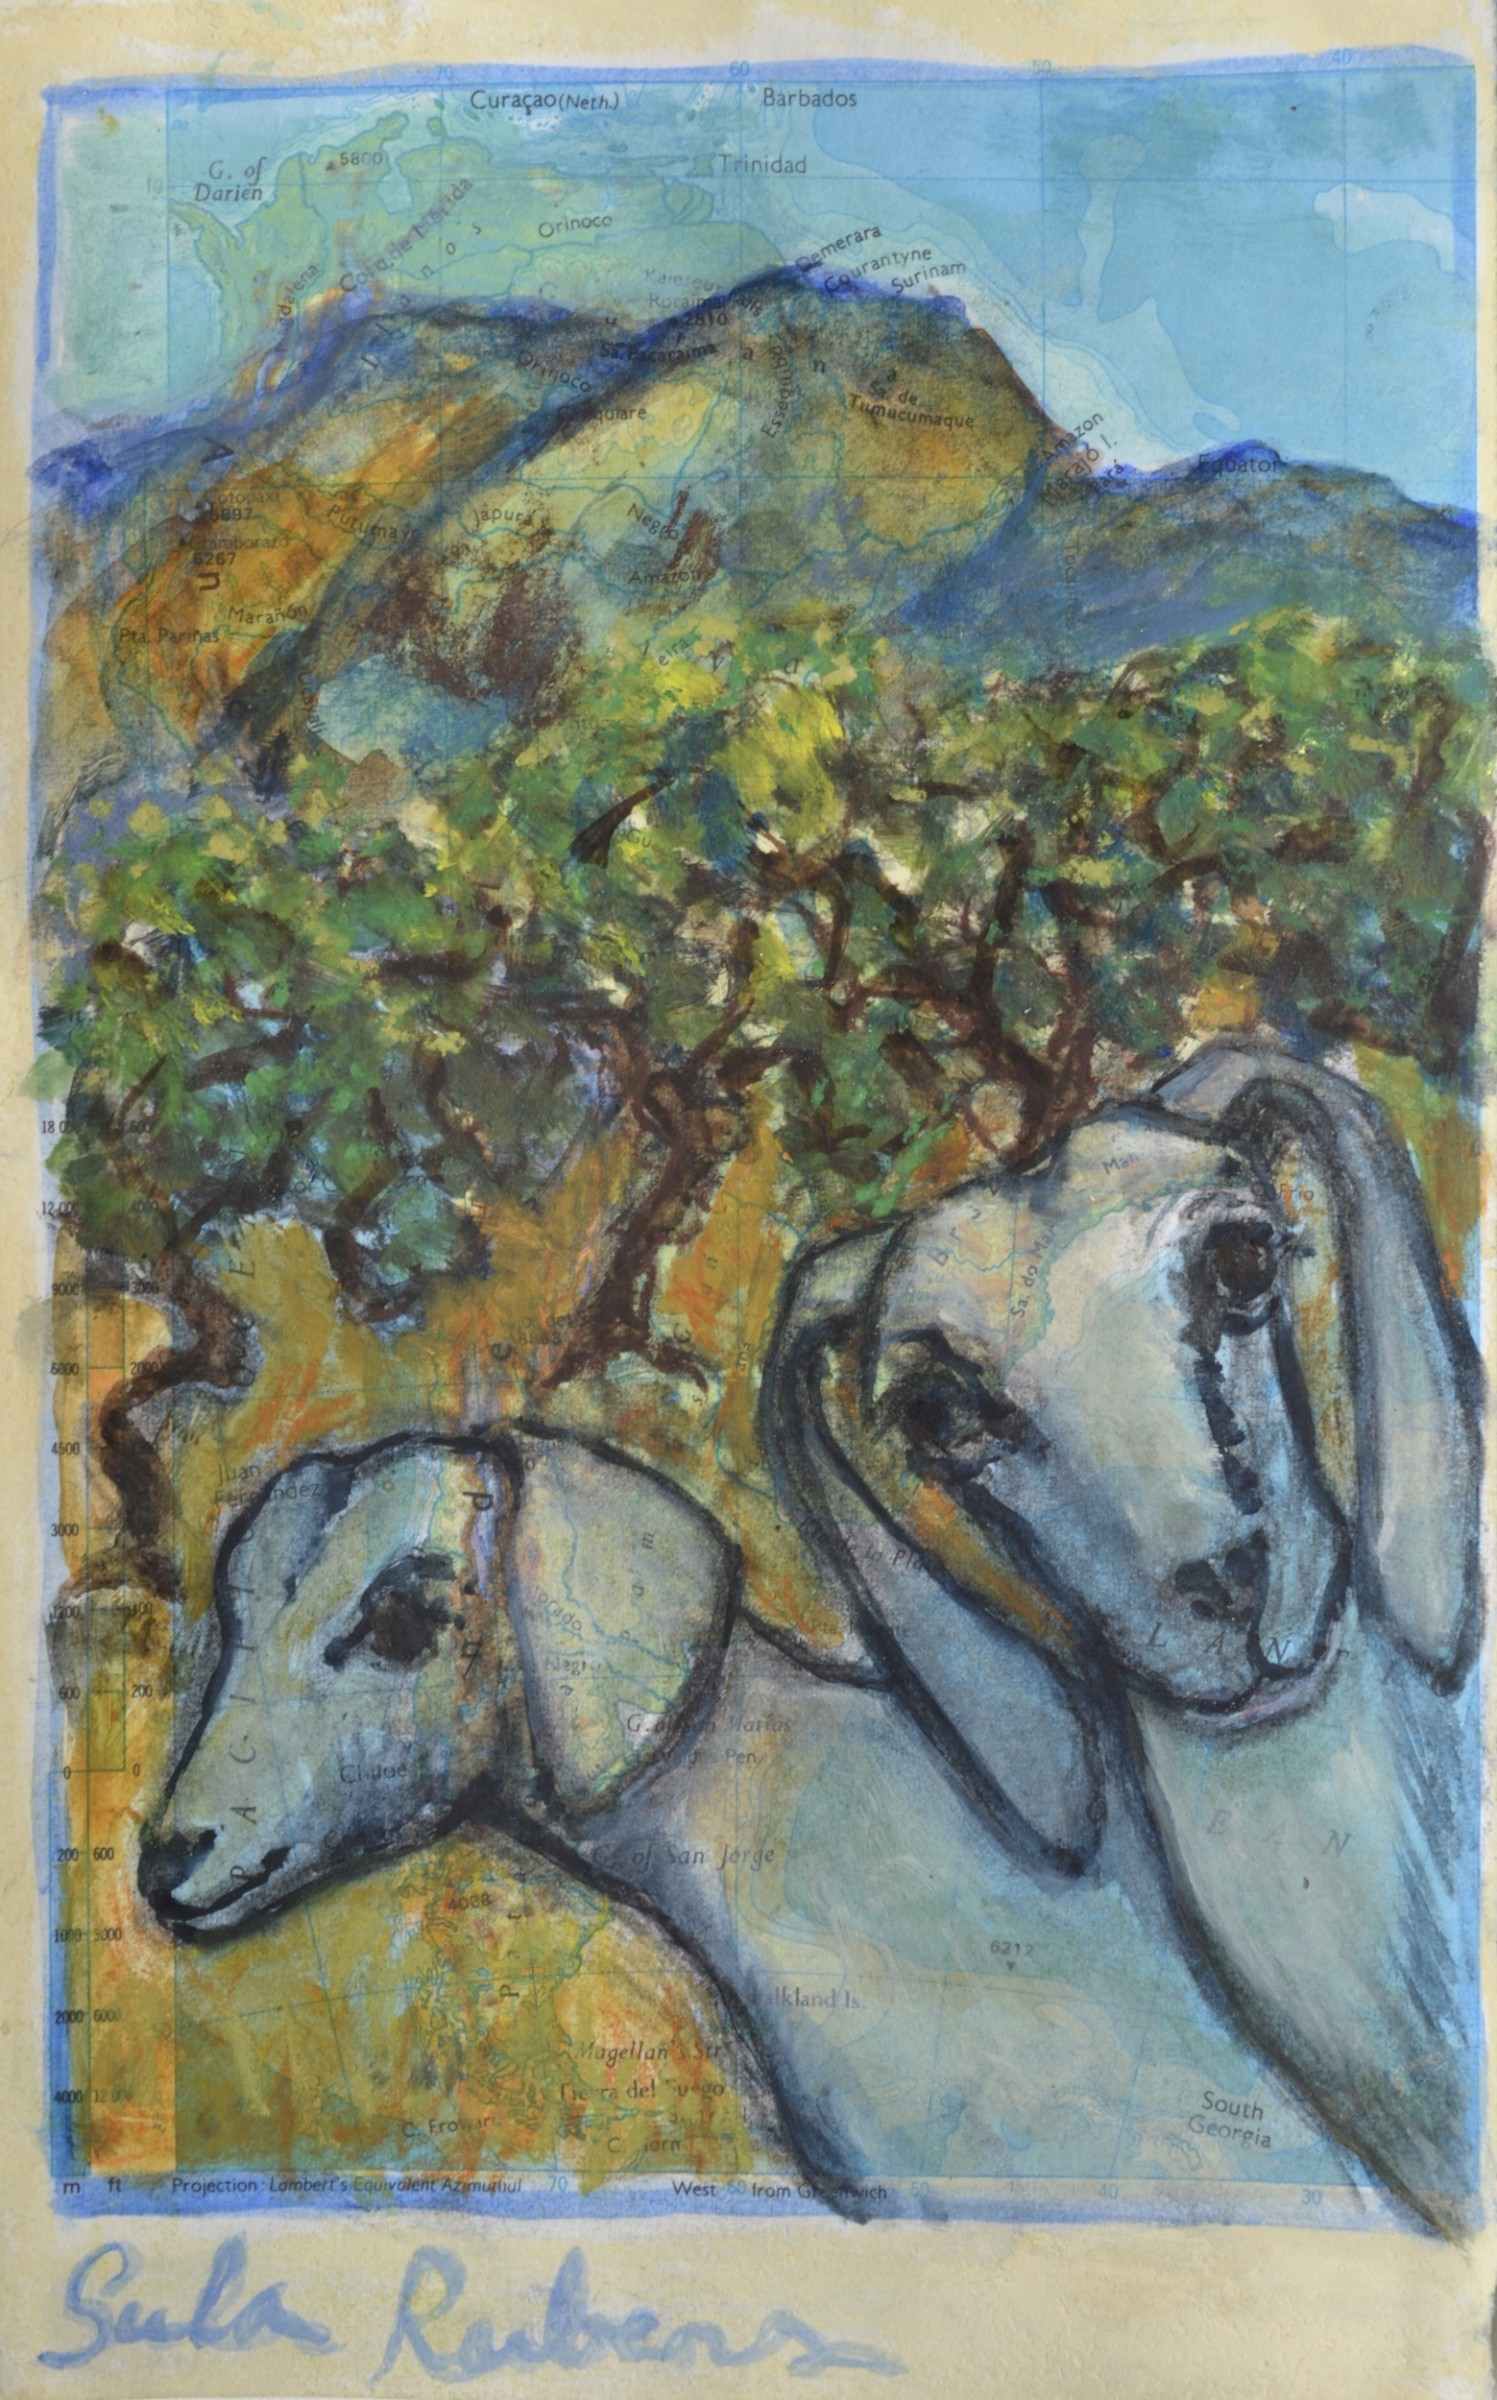 """<span class=""""link fancybox-details-link""""><a href=""""/artists/212-sula-rubens/works/12312-sula-rubens-two-goats-in-a-mountain-landscape/"""">View Detail Page</a></span><div class=""""artist""""><span class=""""artist""""><strong>Sula Rubens</strong></span></div><div class=""""title""""><em>Two Goats in a Mountain Landscape</em></div><div class=""""medium"""">watercolour on paper (map)</div><div class=""""dimensions"""">Frame: 37 x 29 cm<br /> Artwork: 19 x 11.7 cm</div><div class=""""price"""">£295.00</div>"""